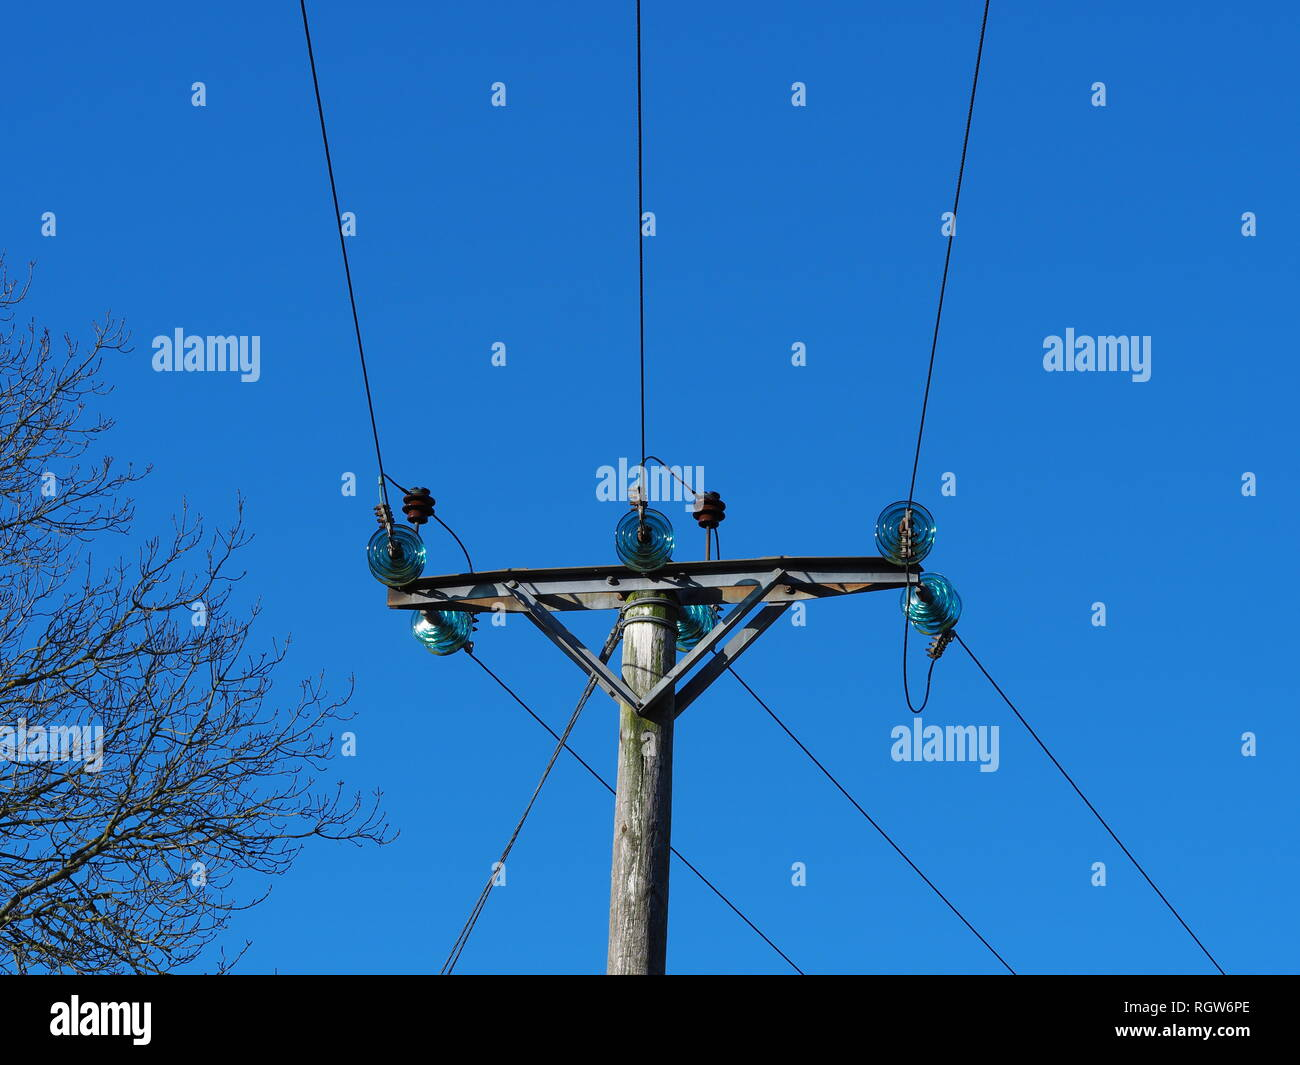 Power Electric Overhead Electric Power Lines Stock Photos Overhead Electric